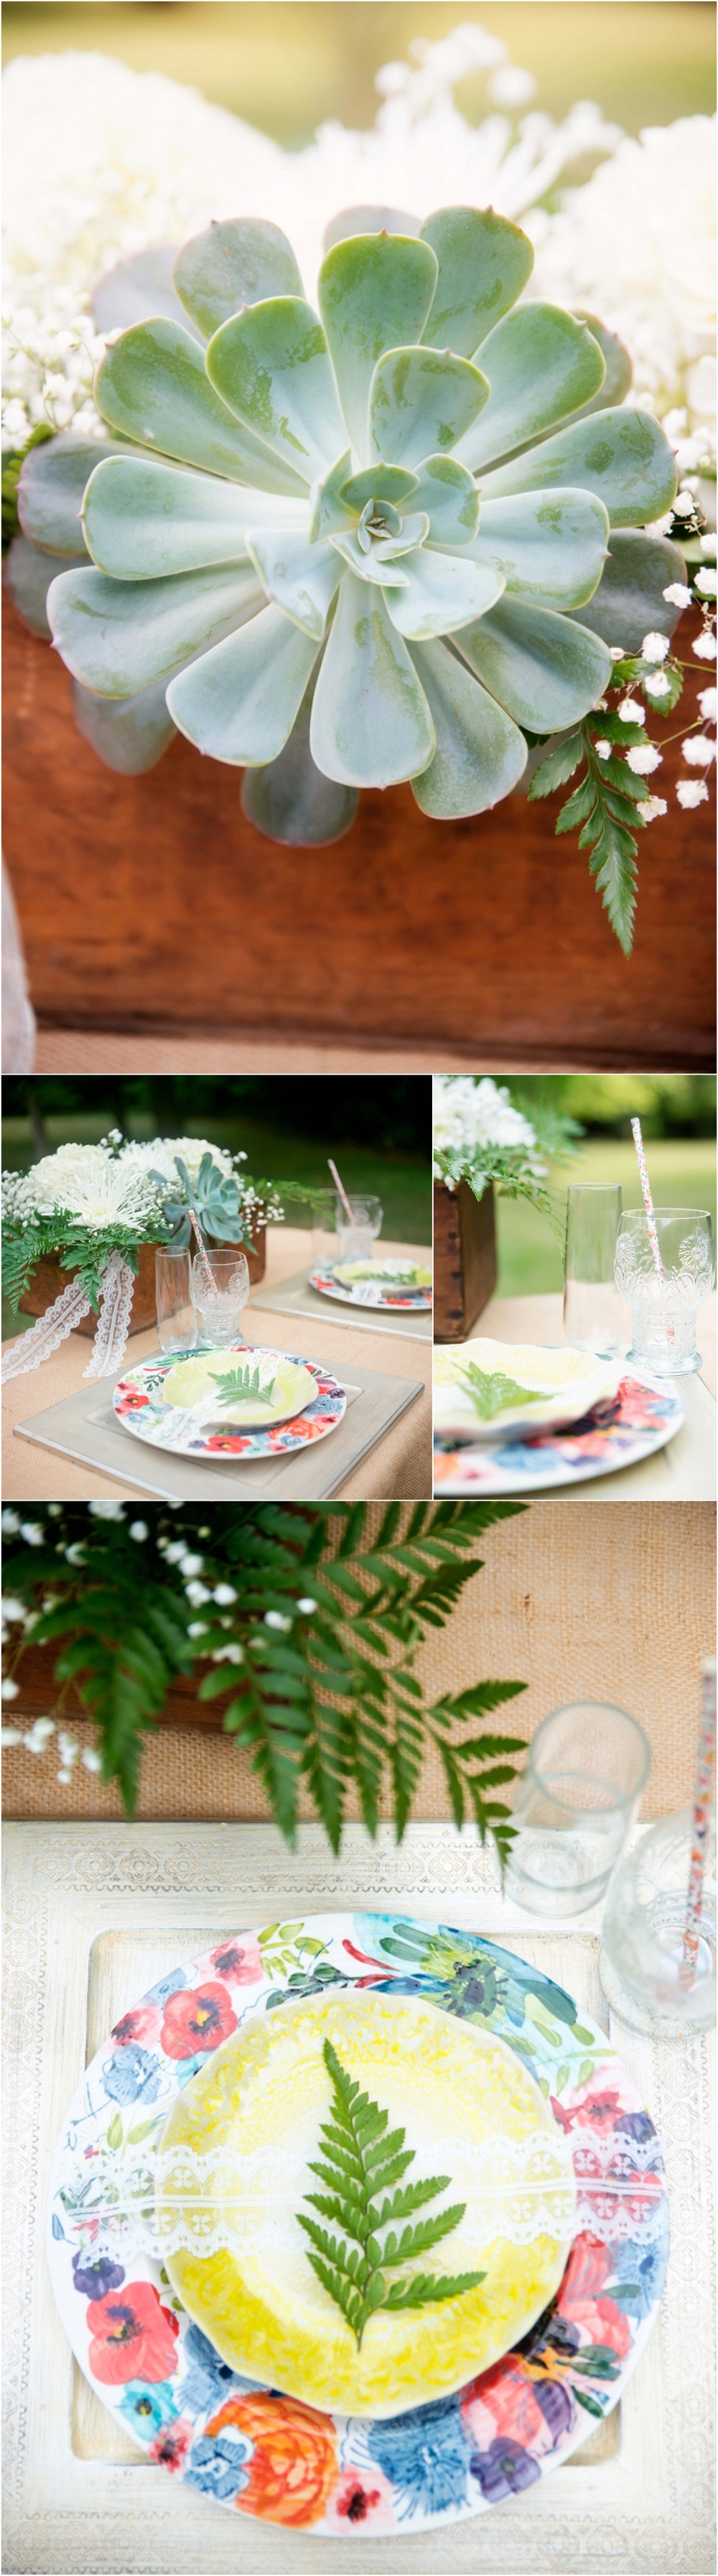 Charlottesville_Wedding_Photographer_Becca B Photography_Styled Shoot Feature_The Perfect Palette6